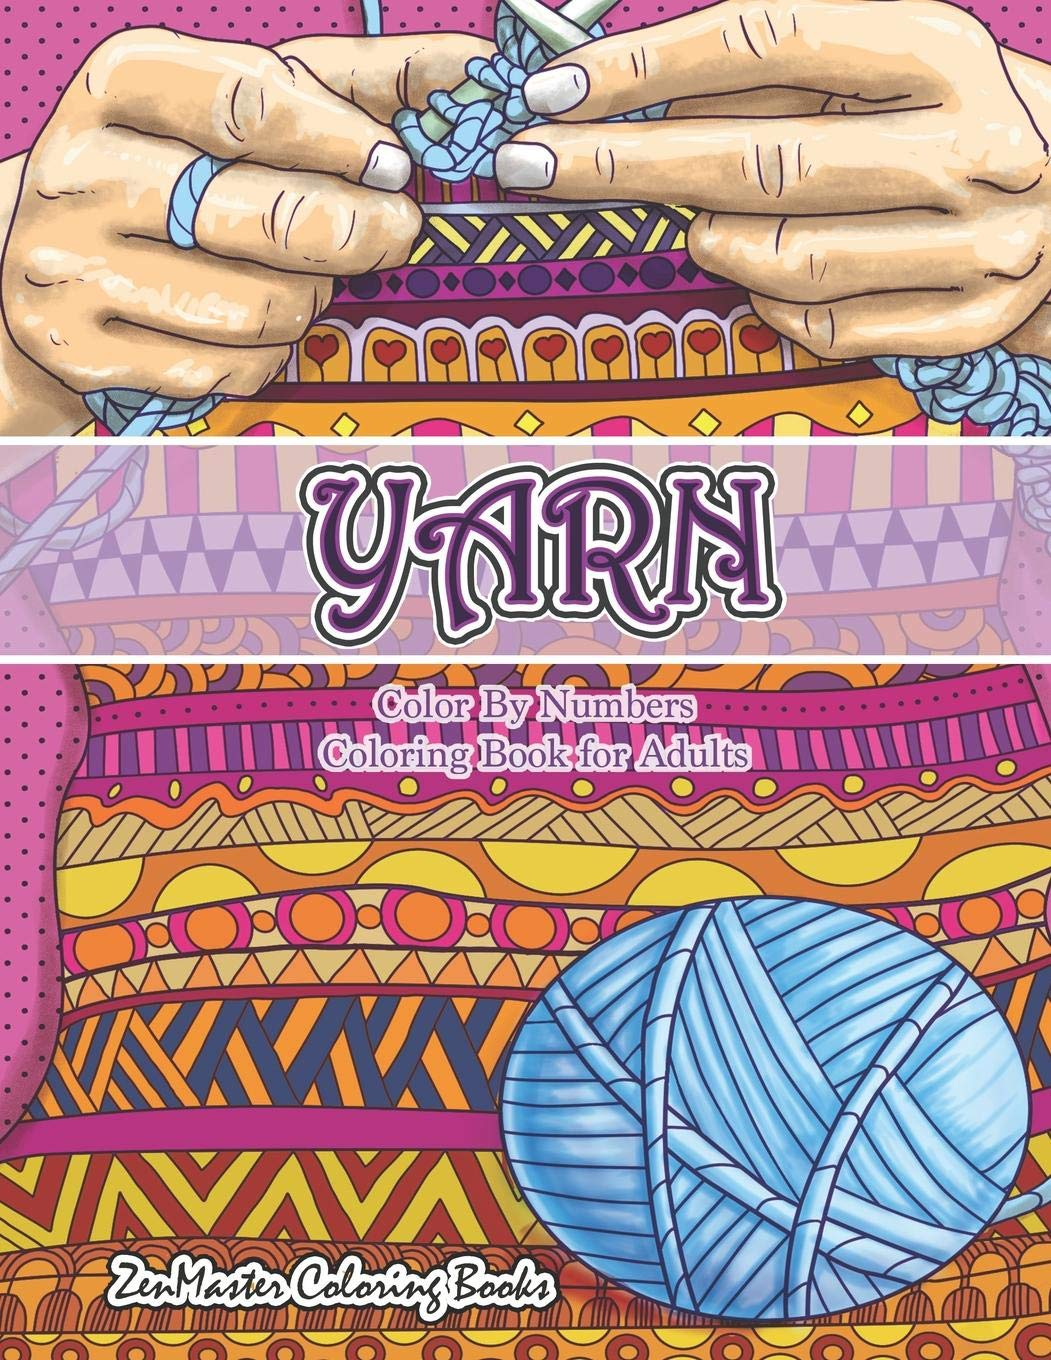 Yarn Color By Numbers Coloring Book for Adults: An Adult ...